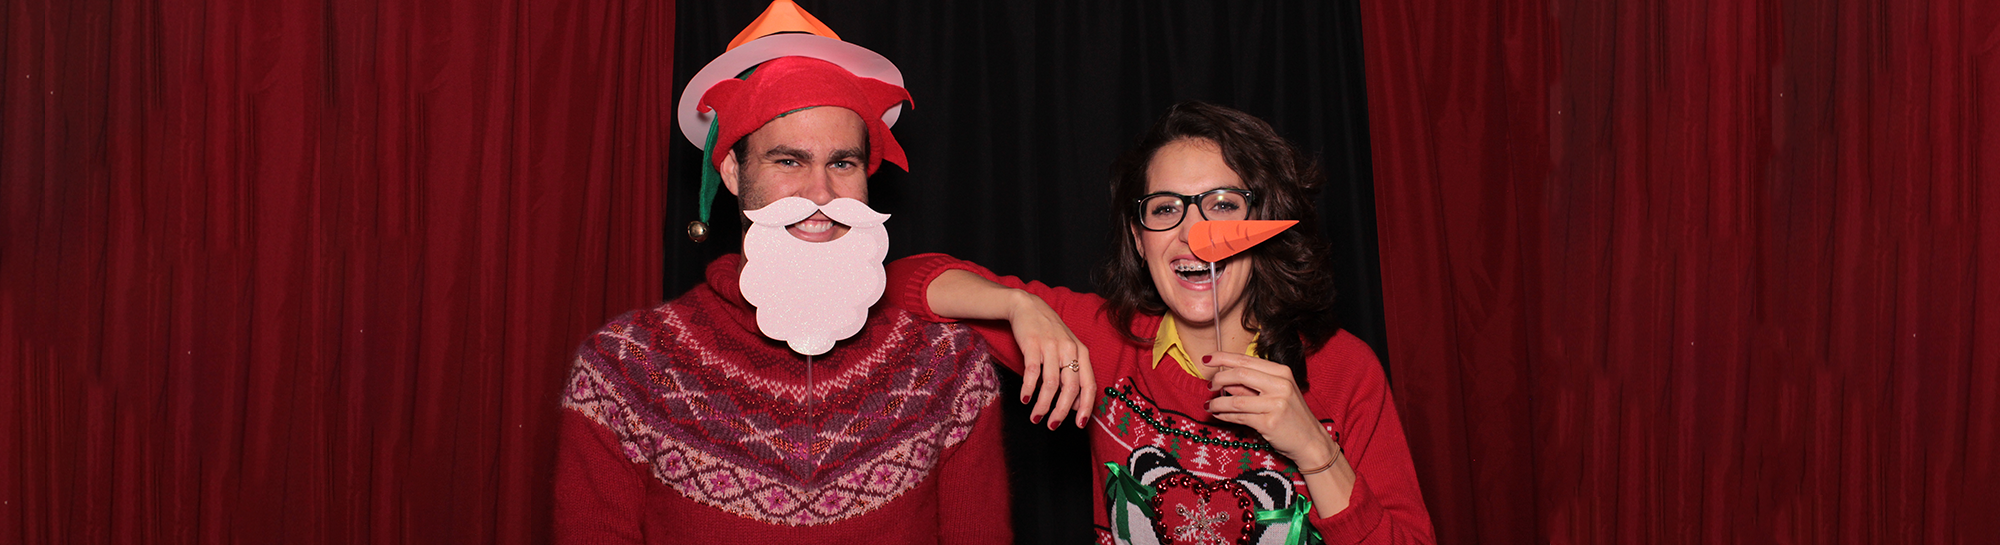 guy and girl in christmas photobooth